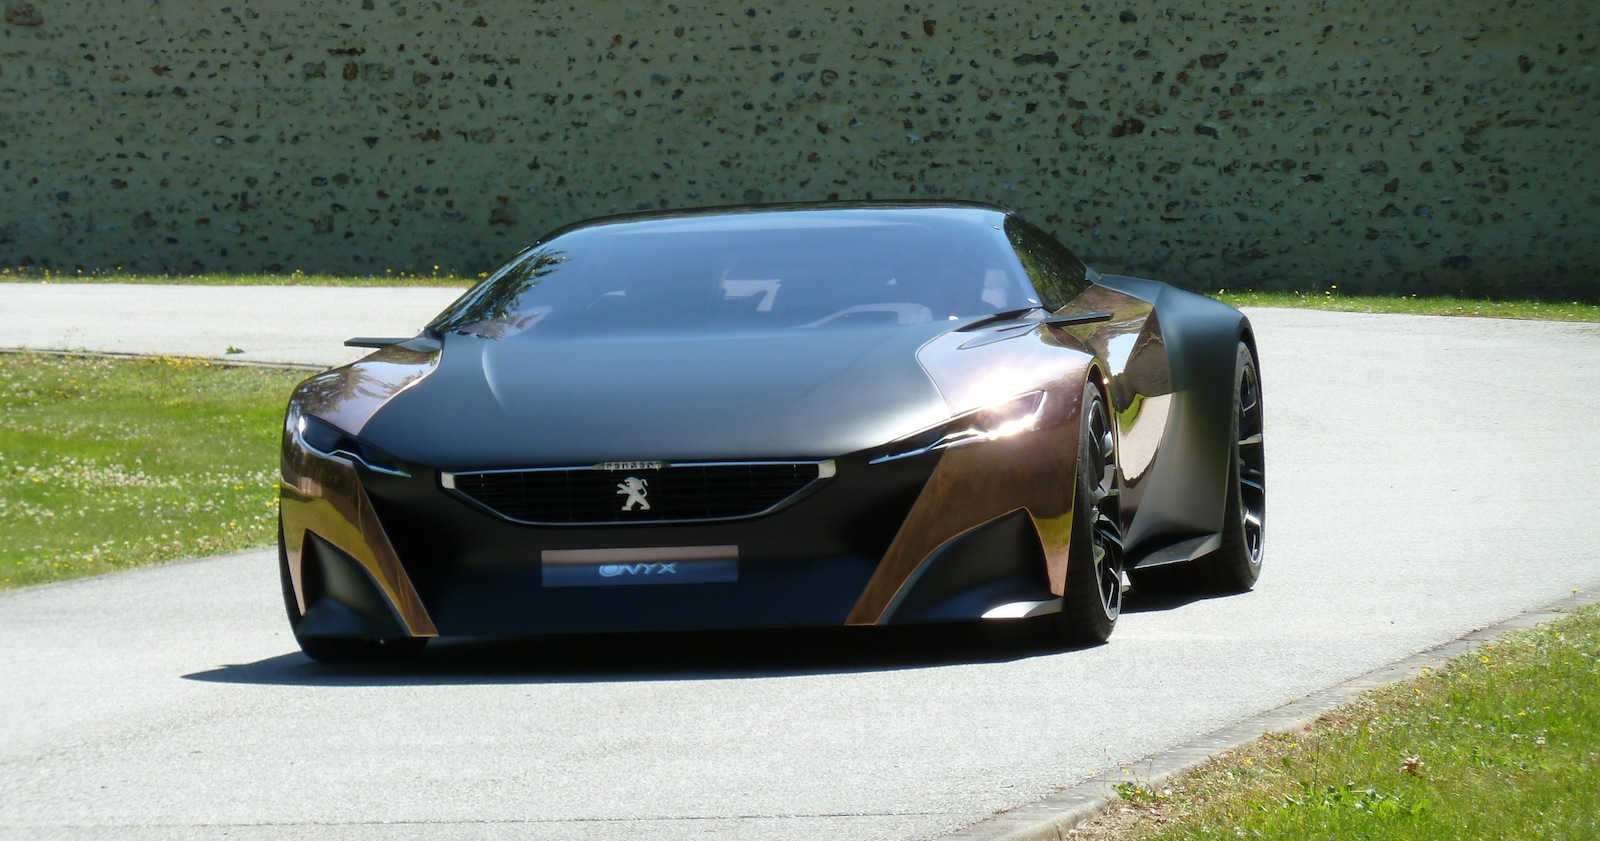 Peugeot Onyx concept bound for Goodwood, taking passengers ...